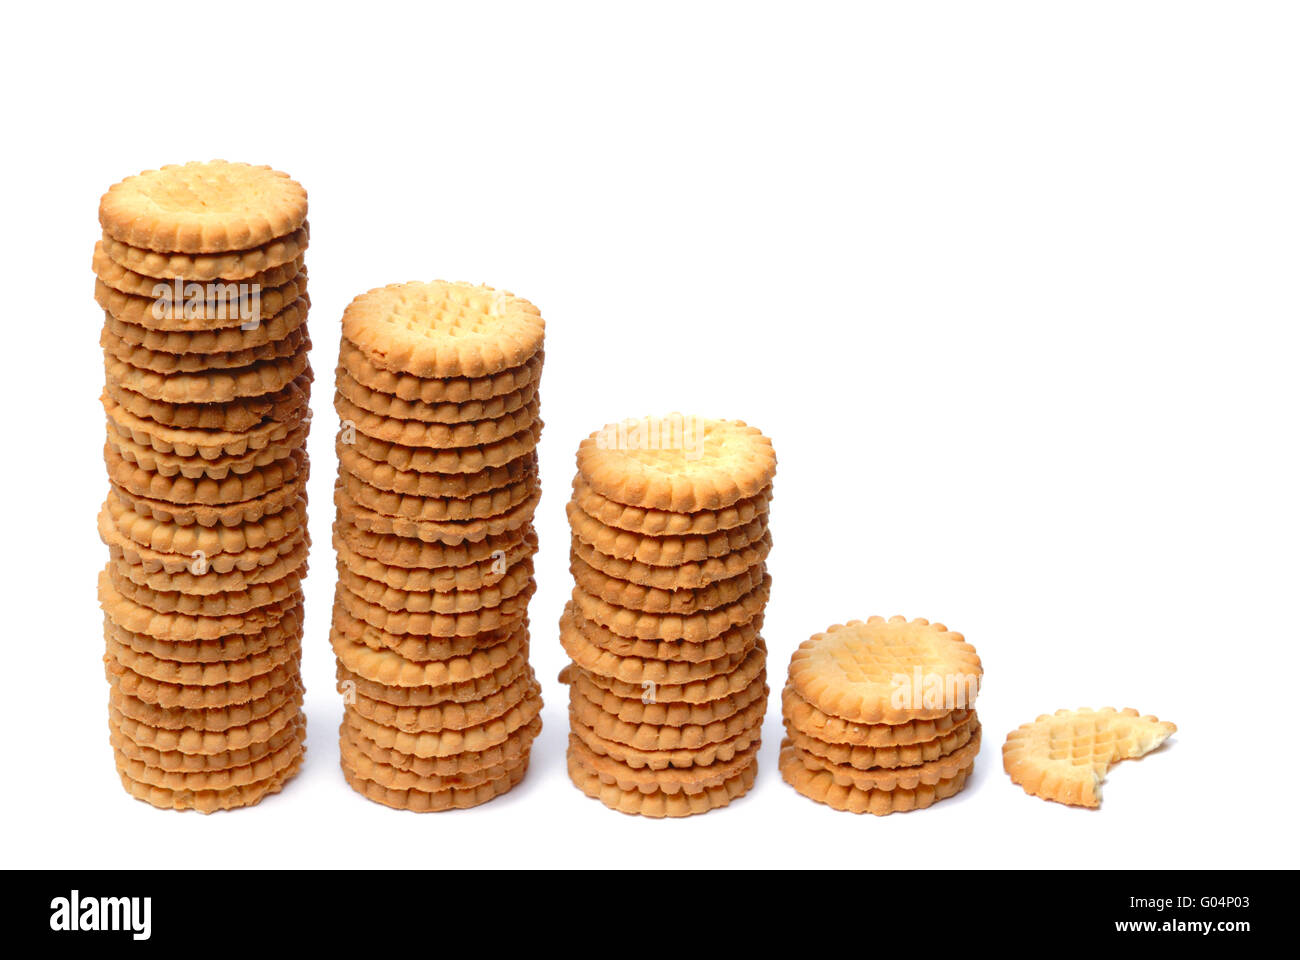 Descending graph made out of stacks of cookies - Stock Image